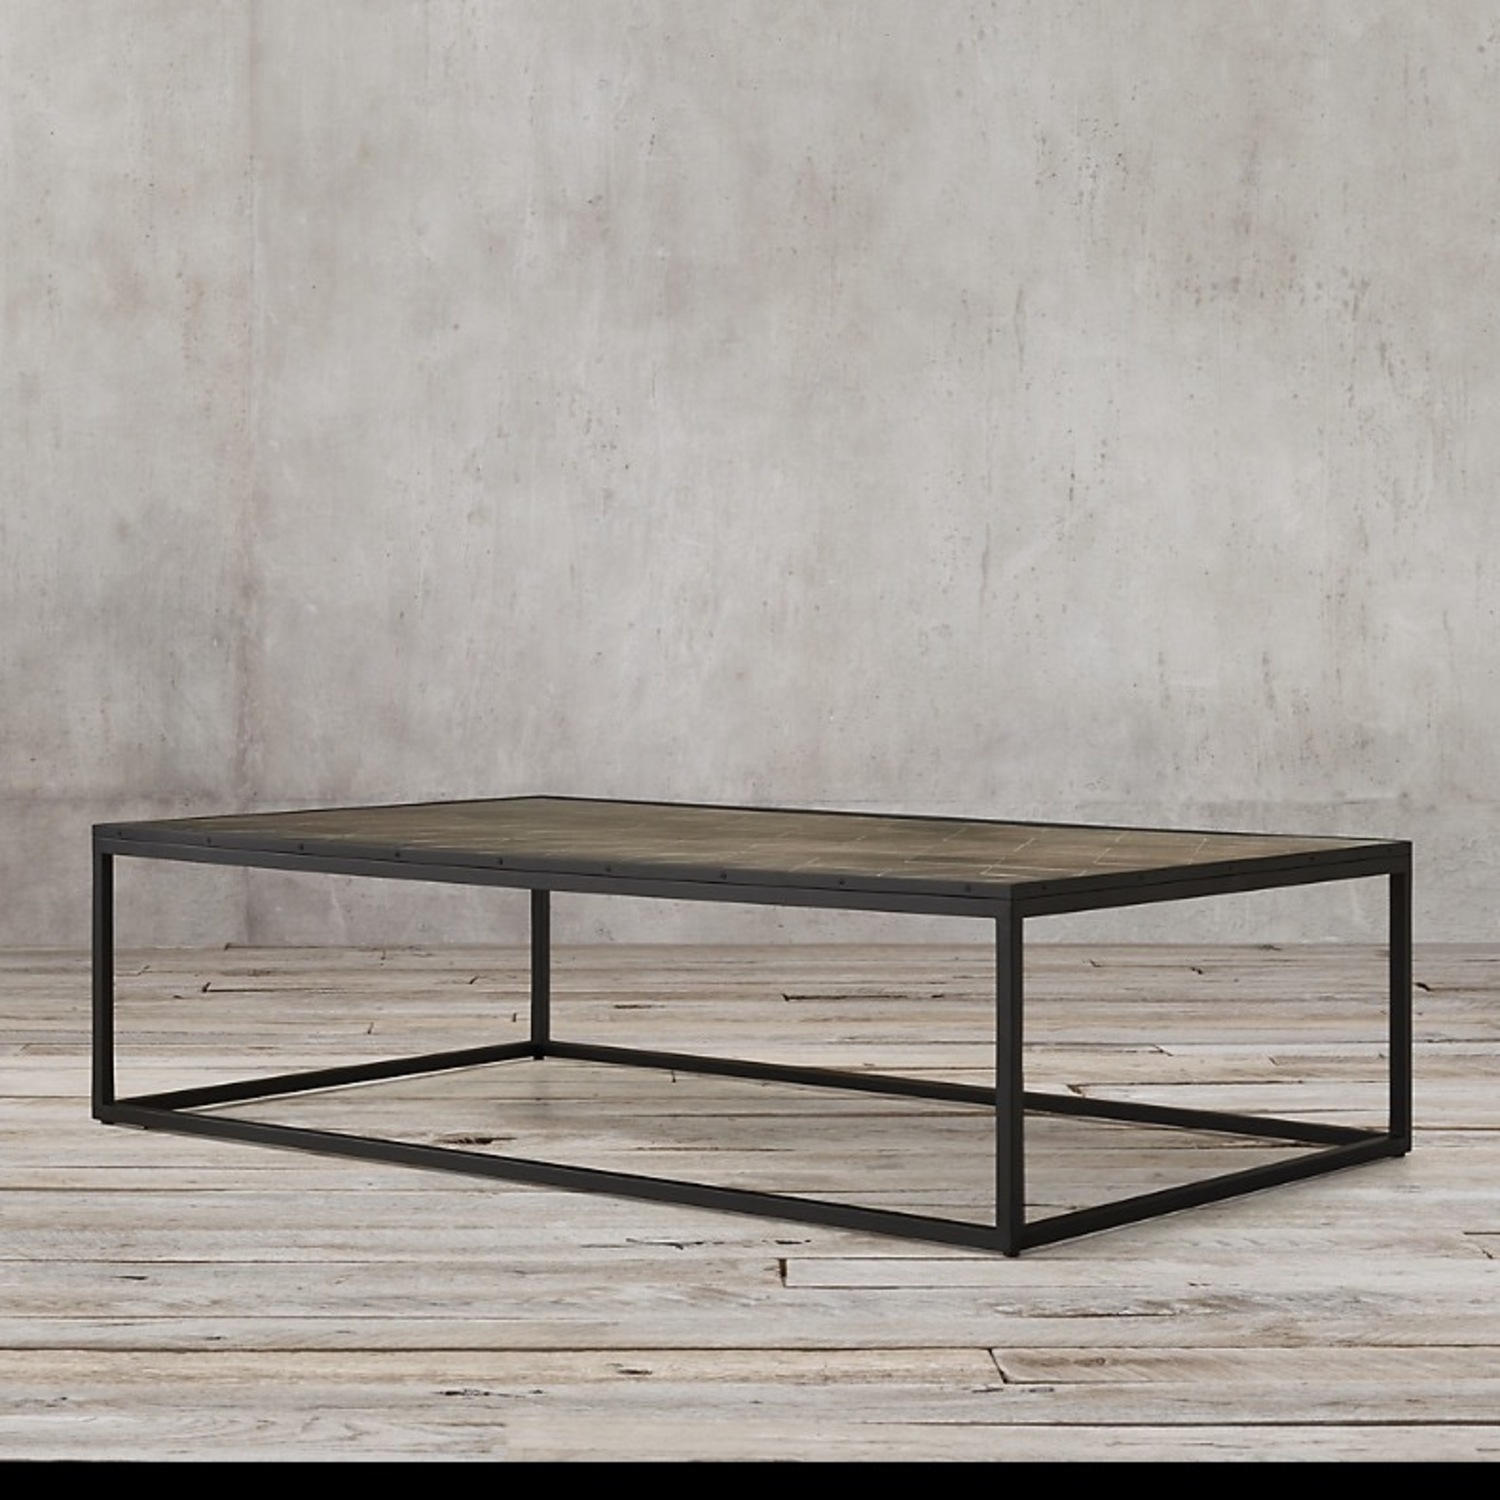 Restoration Hardware Metal Parquet Coffee Table - image-1